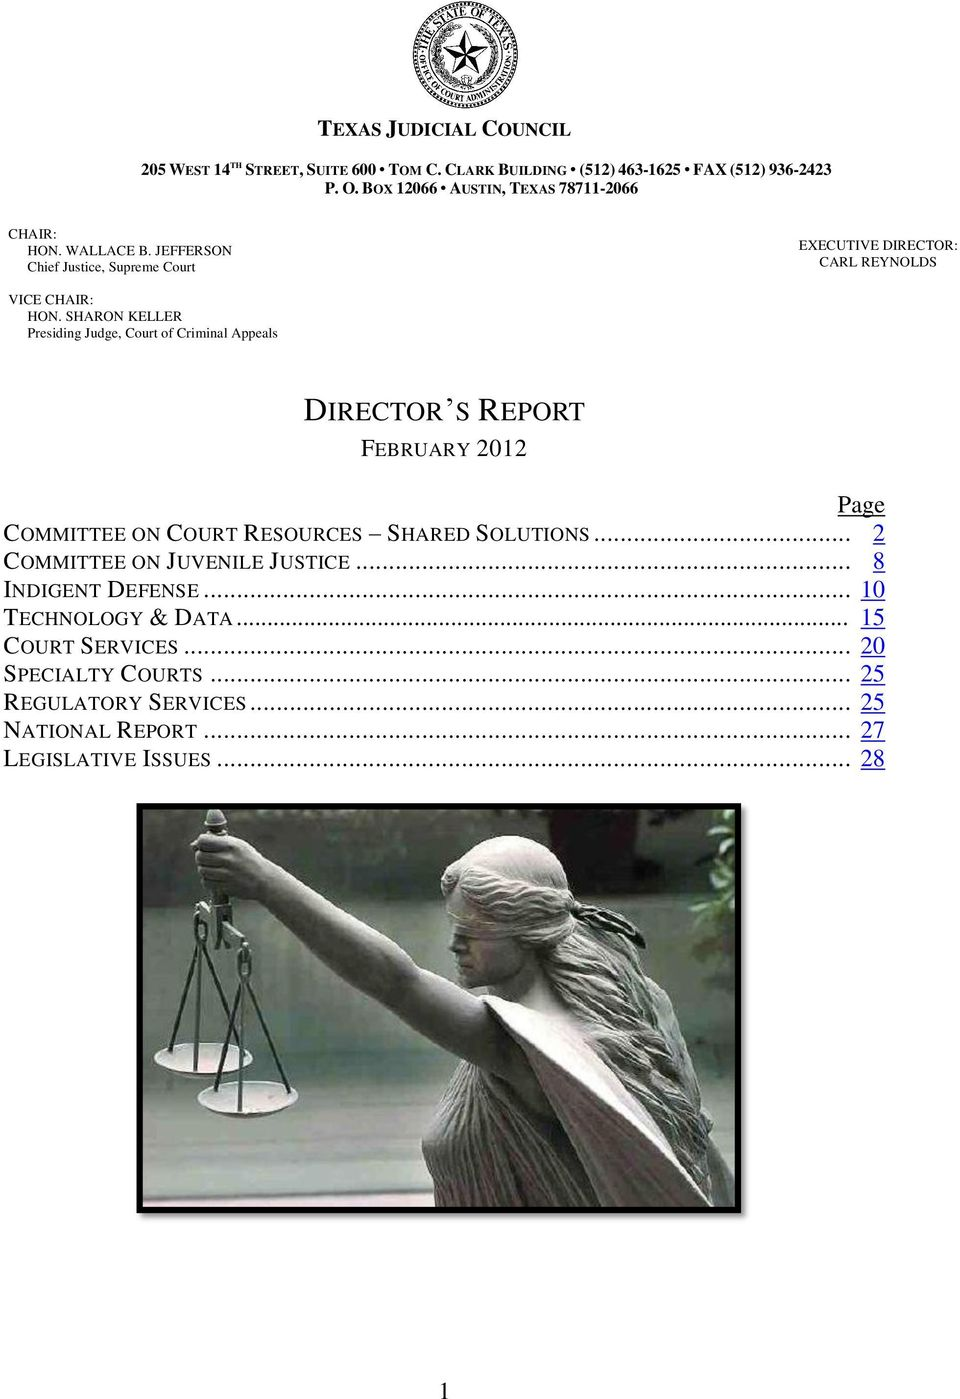 SHARON KELLER Presiding Judge, Court of Criminal Appeals DIRECTOR S REPORT DIRECTOR S REPORT FEBRUARY 2012 Page COMMITTEE ON COURT RESOURCES SHARED SOLUTIONS.